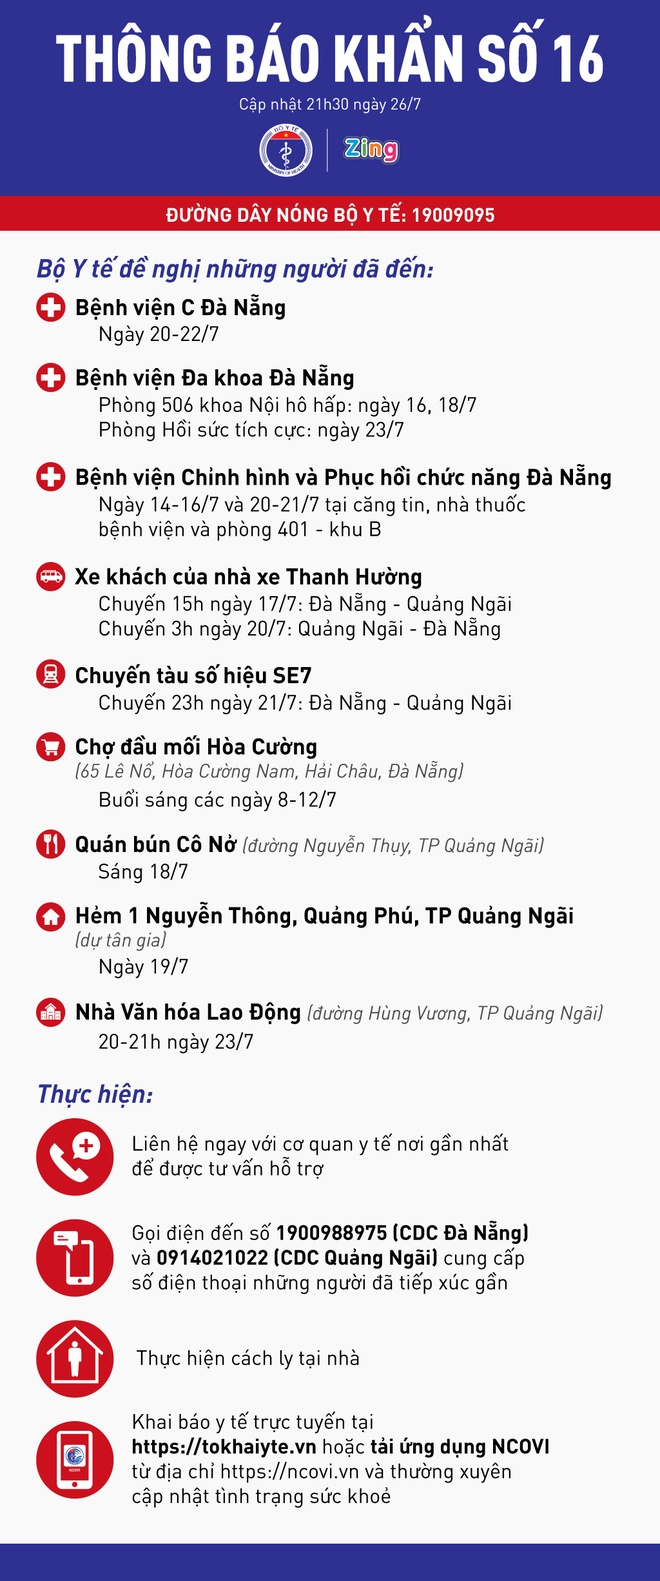 Covid-19 anh 2